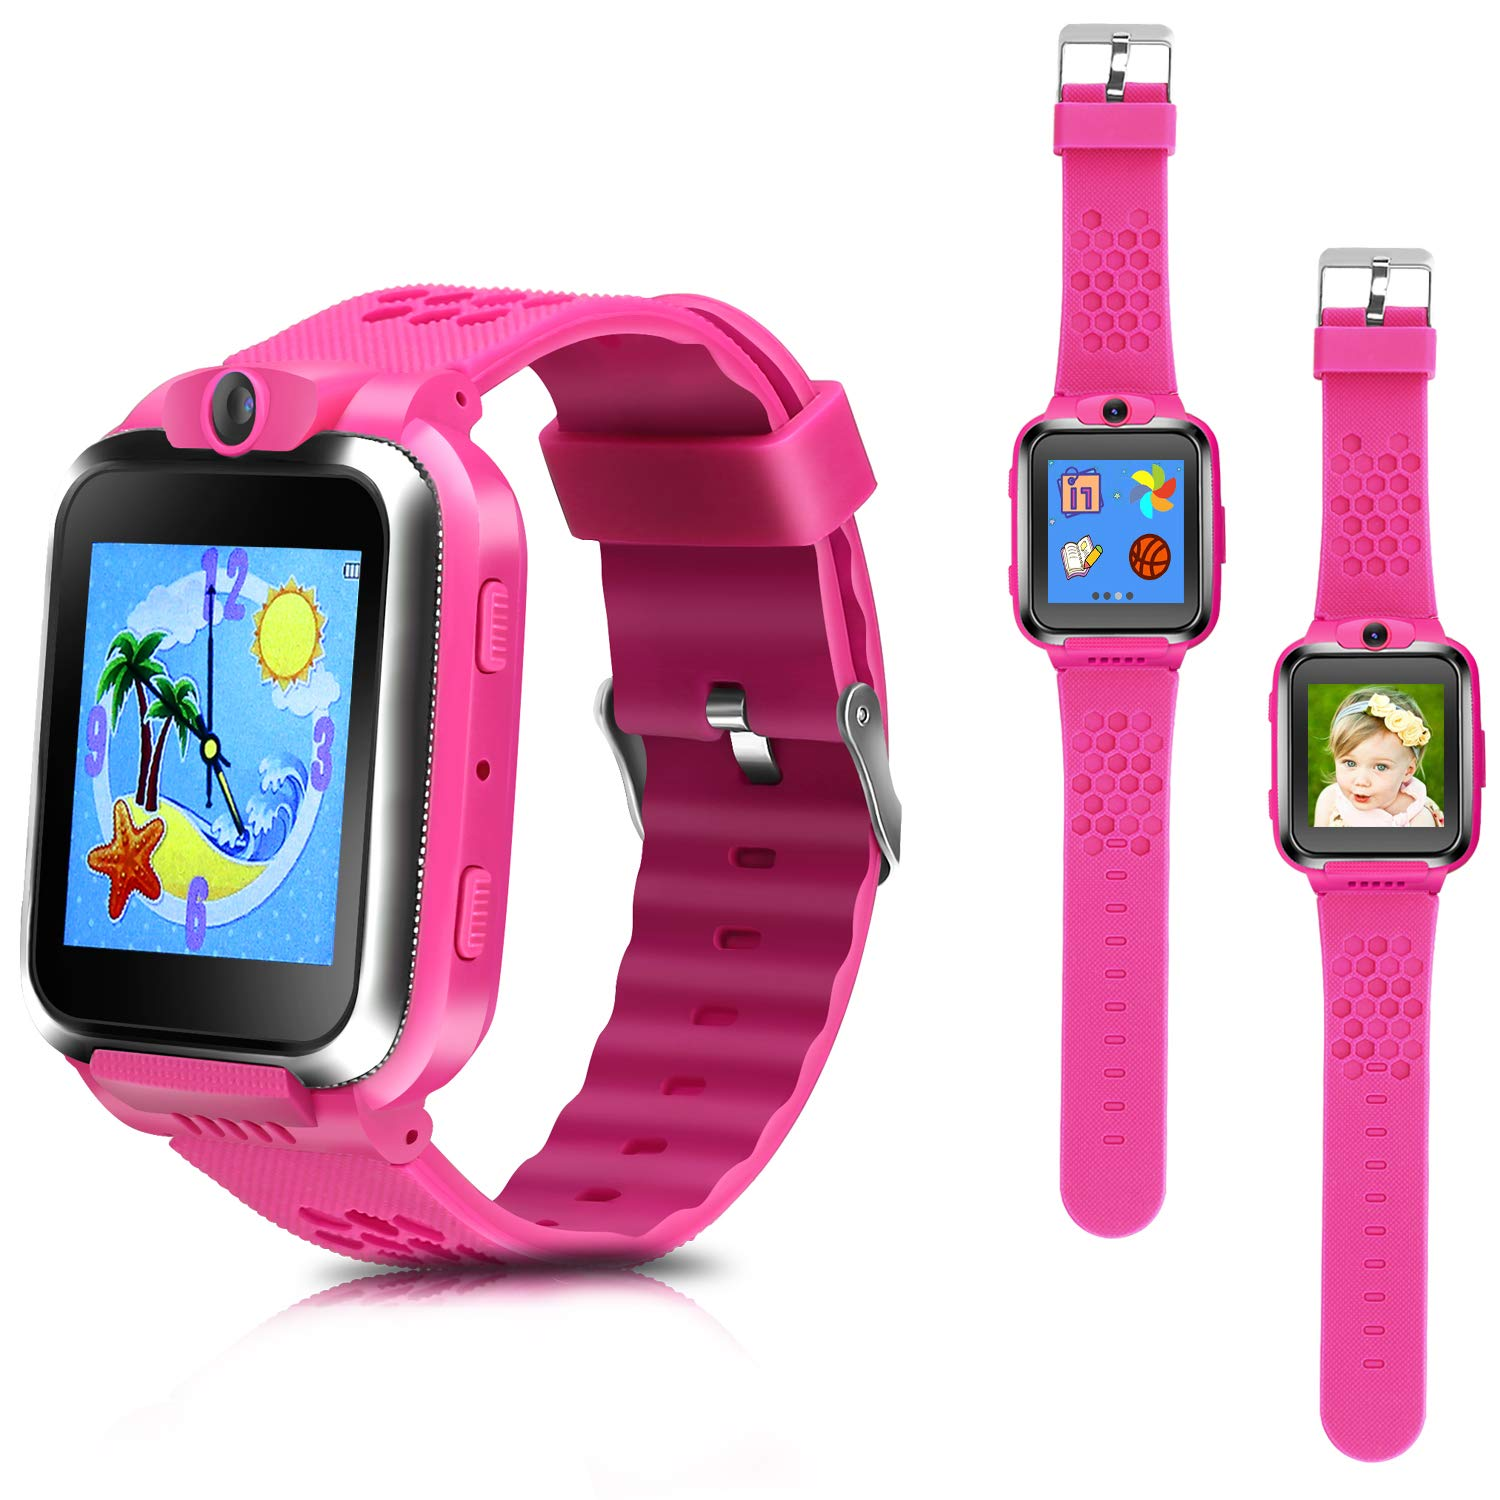 Smart Watches for Kids Digital Game Watches